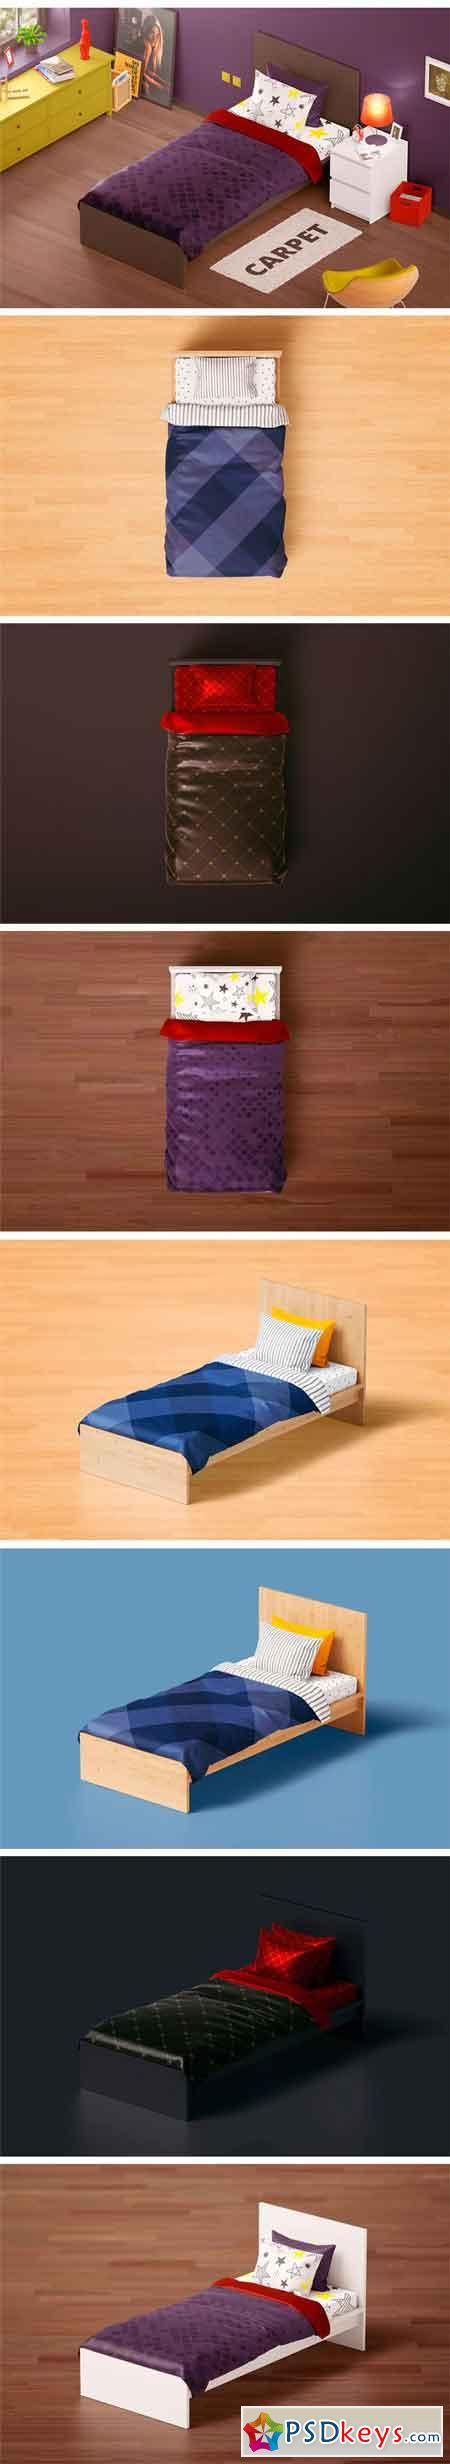 Bedding Set Mockup Single Bed 2387759